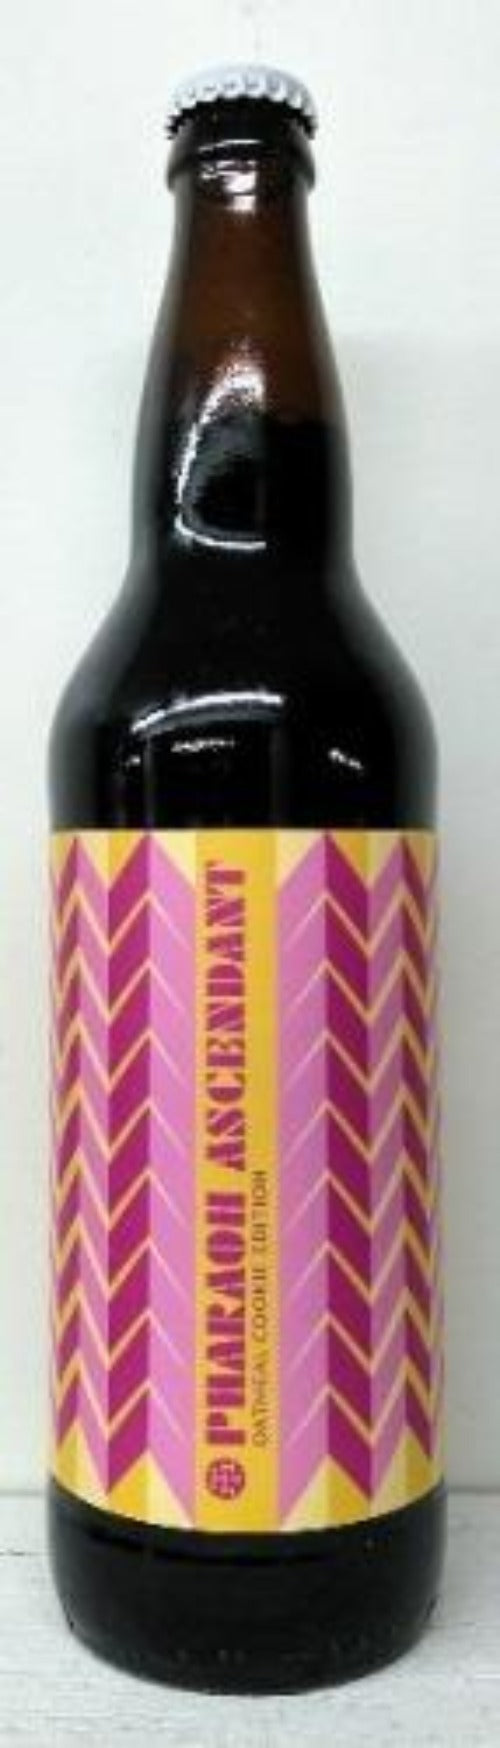 MODERN TIMES PHARAOH ASCENDANT OATMEAL COOKIE IMPERIAL STOUT 22oz (LIMIT 1)